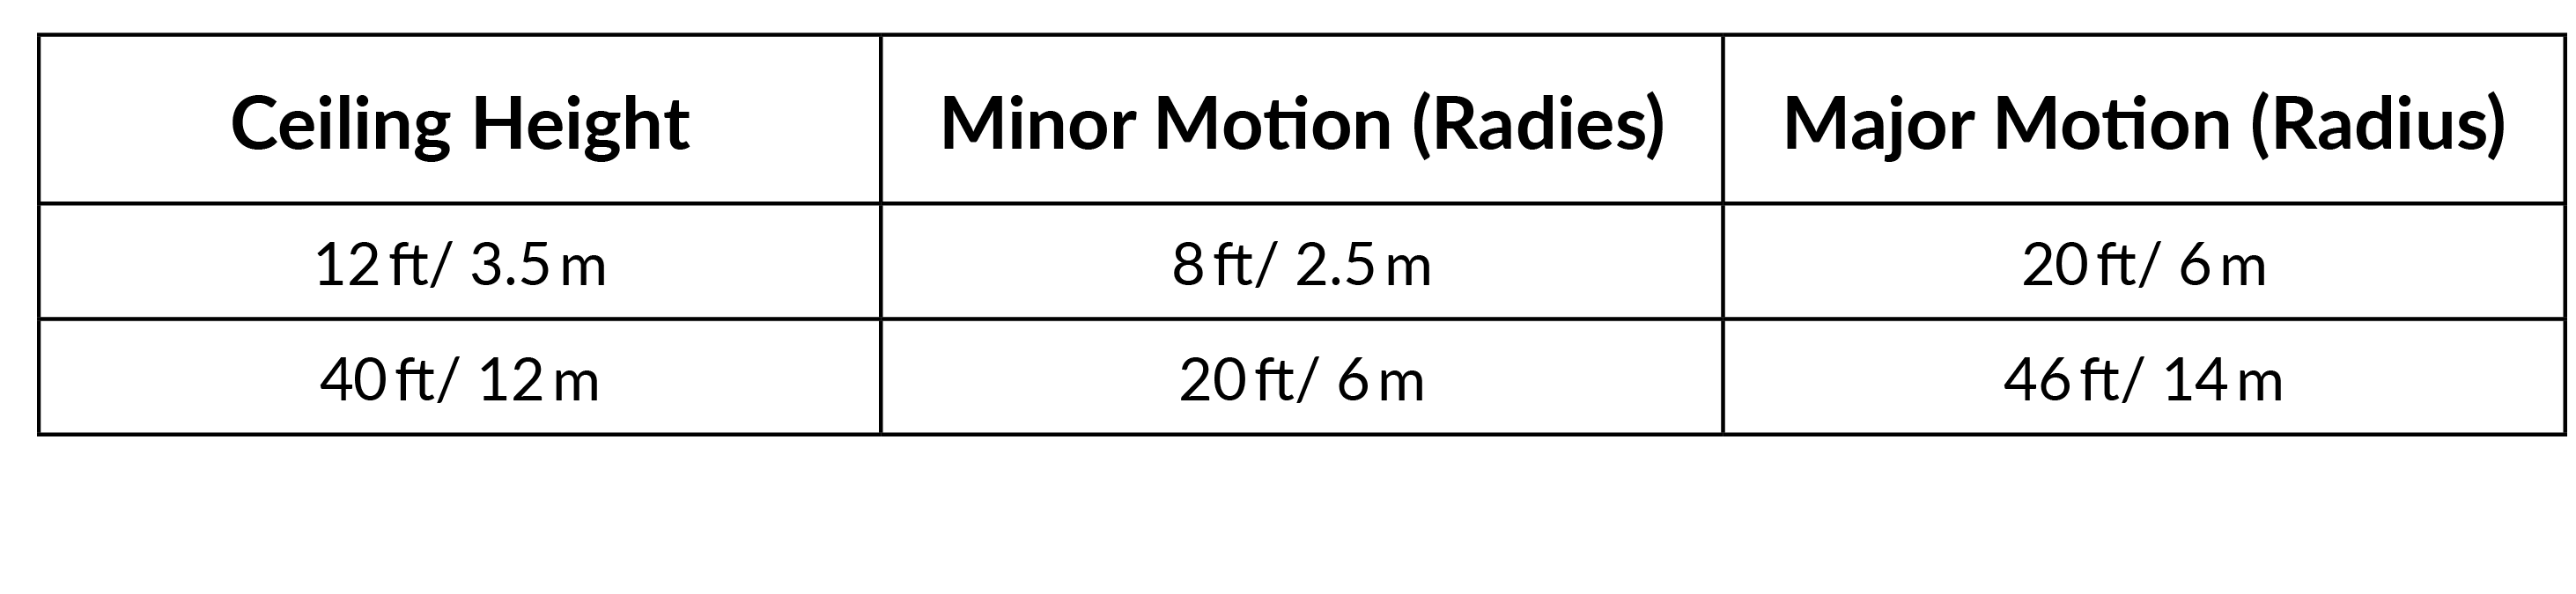 Ruggedized Sensor Motion Chart